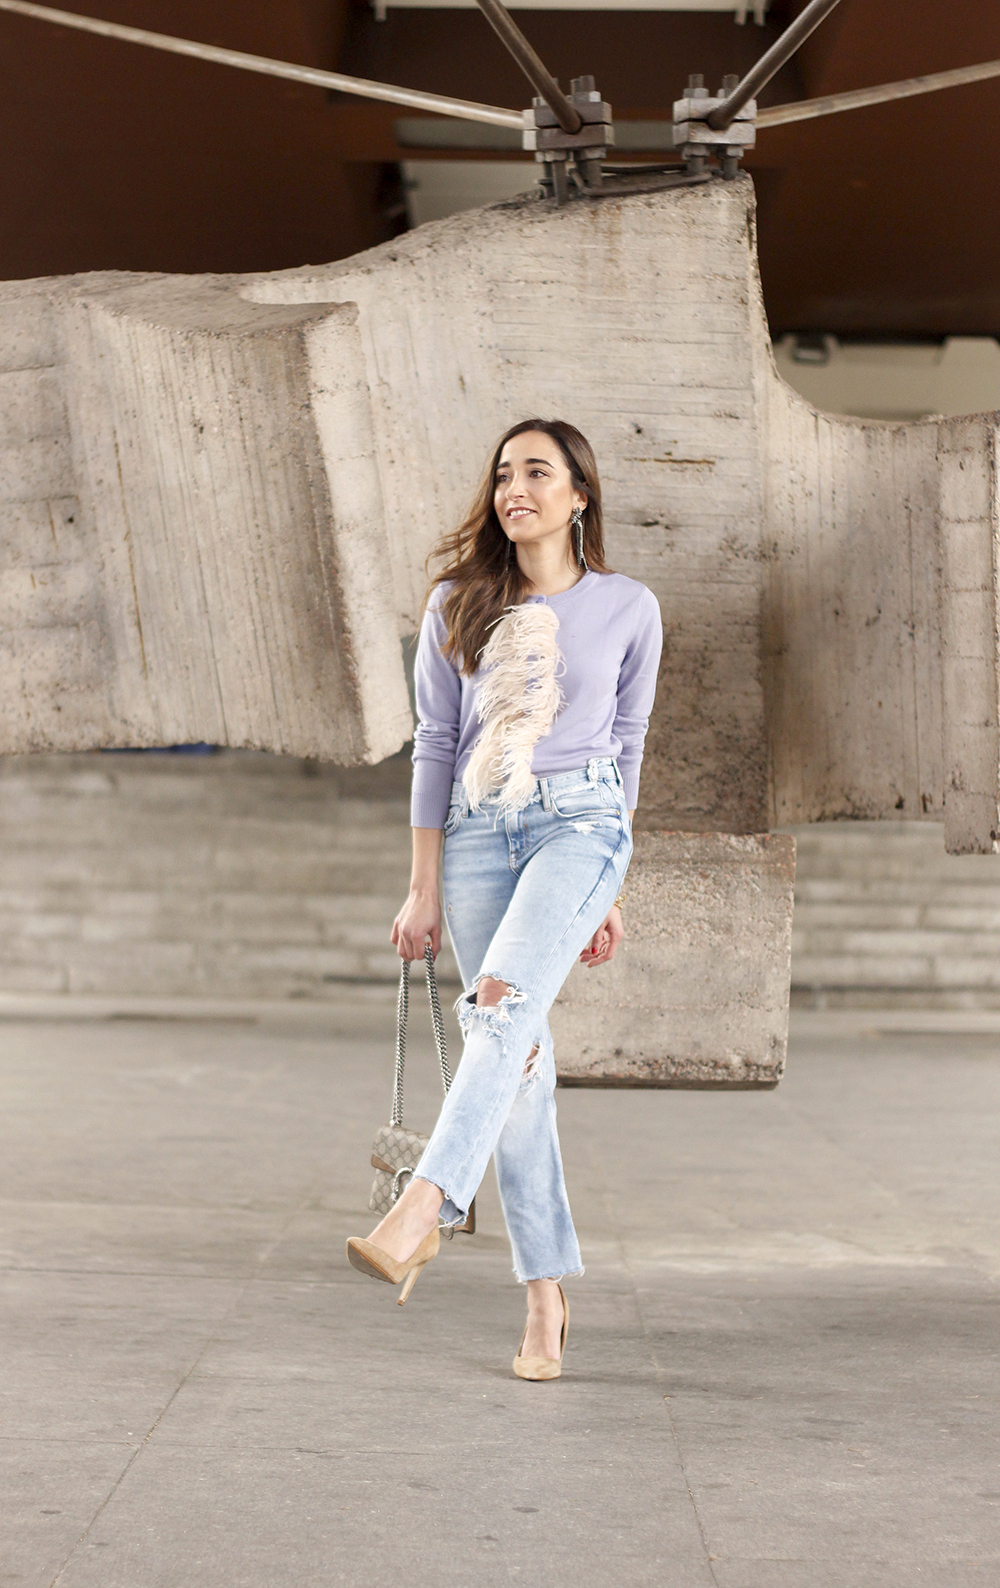 lavender sweater ripped jeans gucci bag nude heels casual street style casual outfit 20193